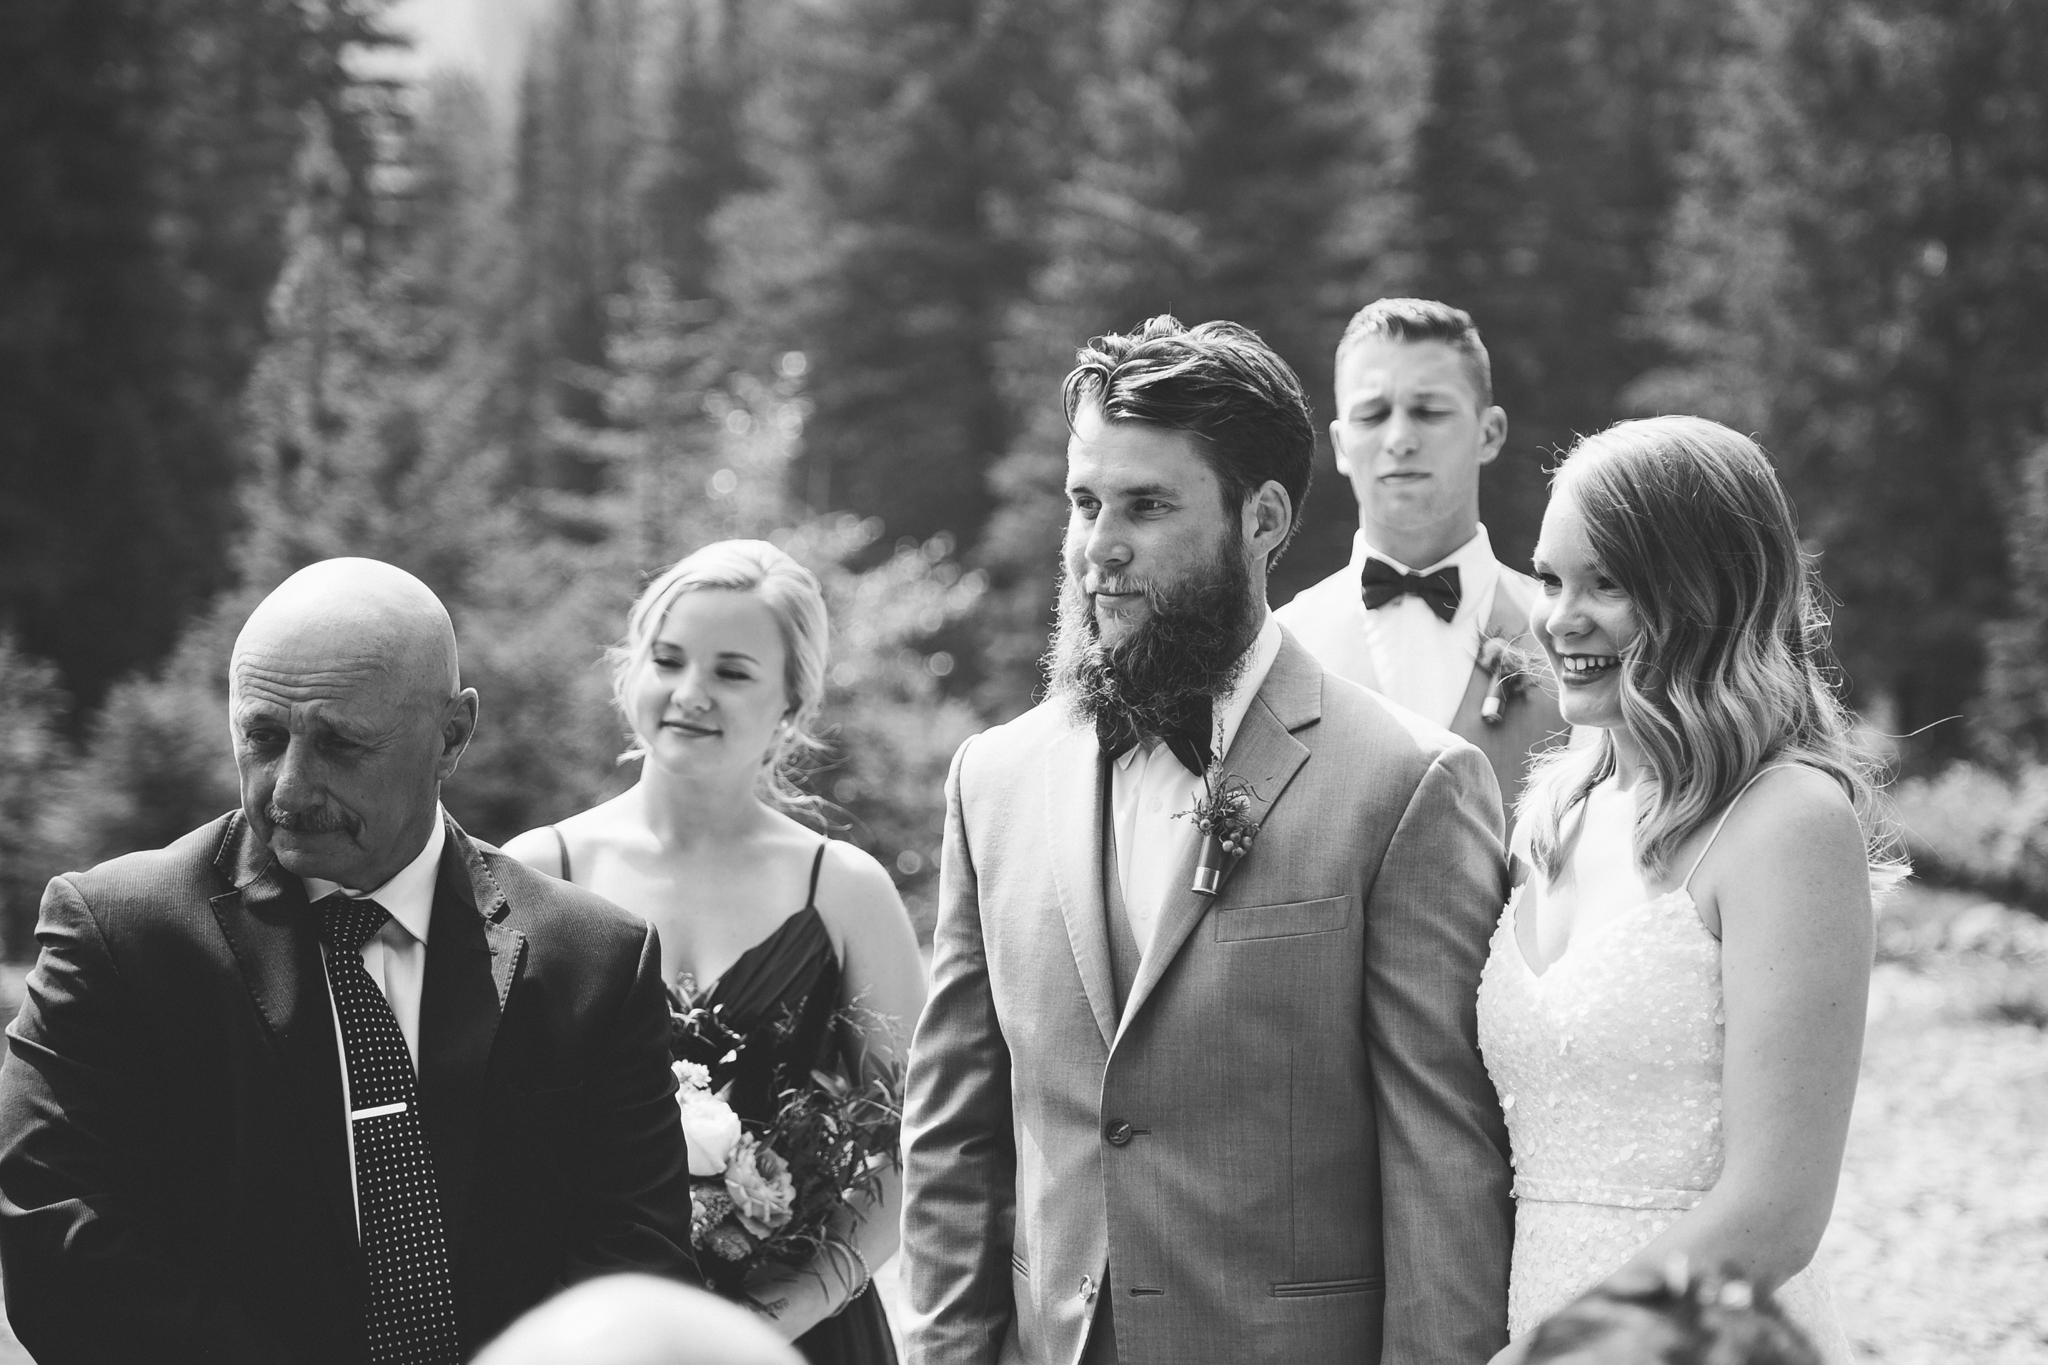 castle-mountain-wedding-photographer-love-and-be-loved-photography-lethbridge-pincher-creek-crowsnest-pass-yannick-rylee-photo-image-picture-80.jpg